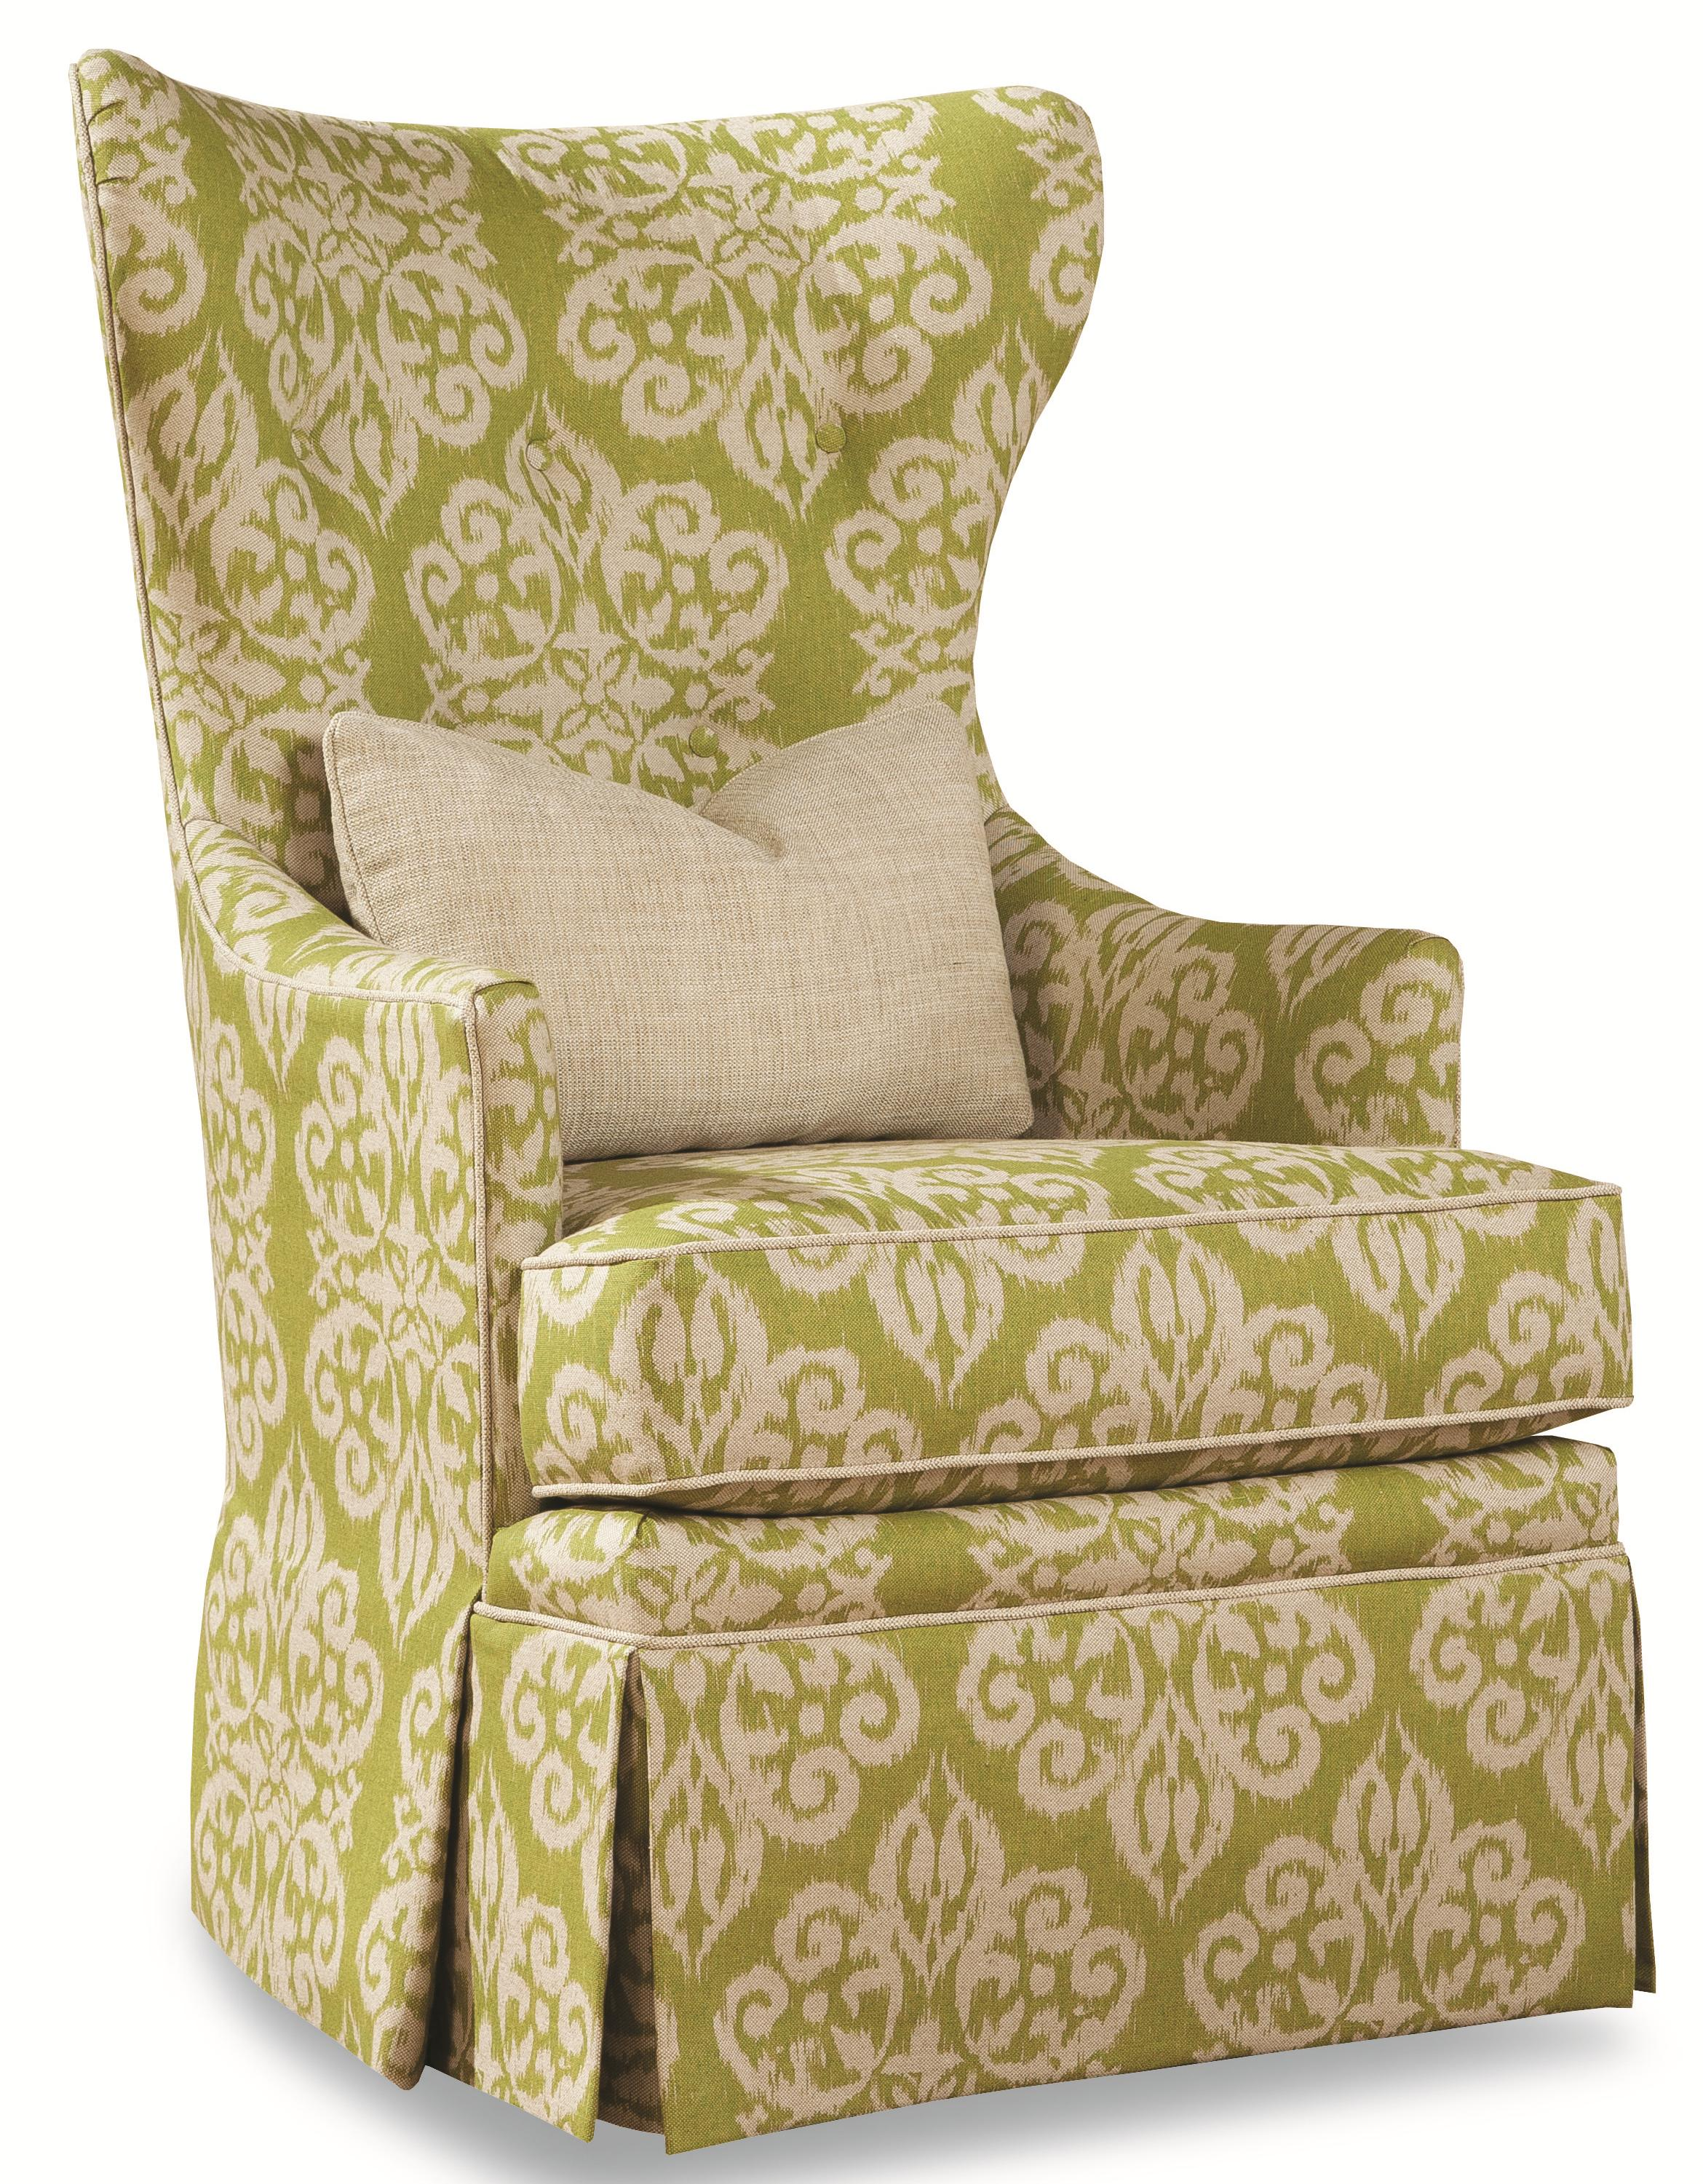 3392 Traditional Swivel Chair by Huntington House at Baer's Furniture